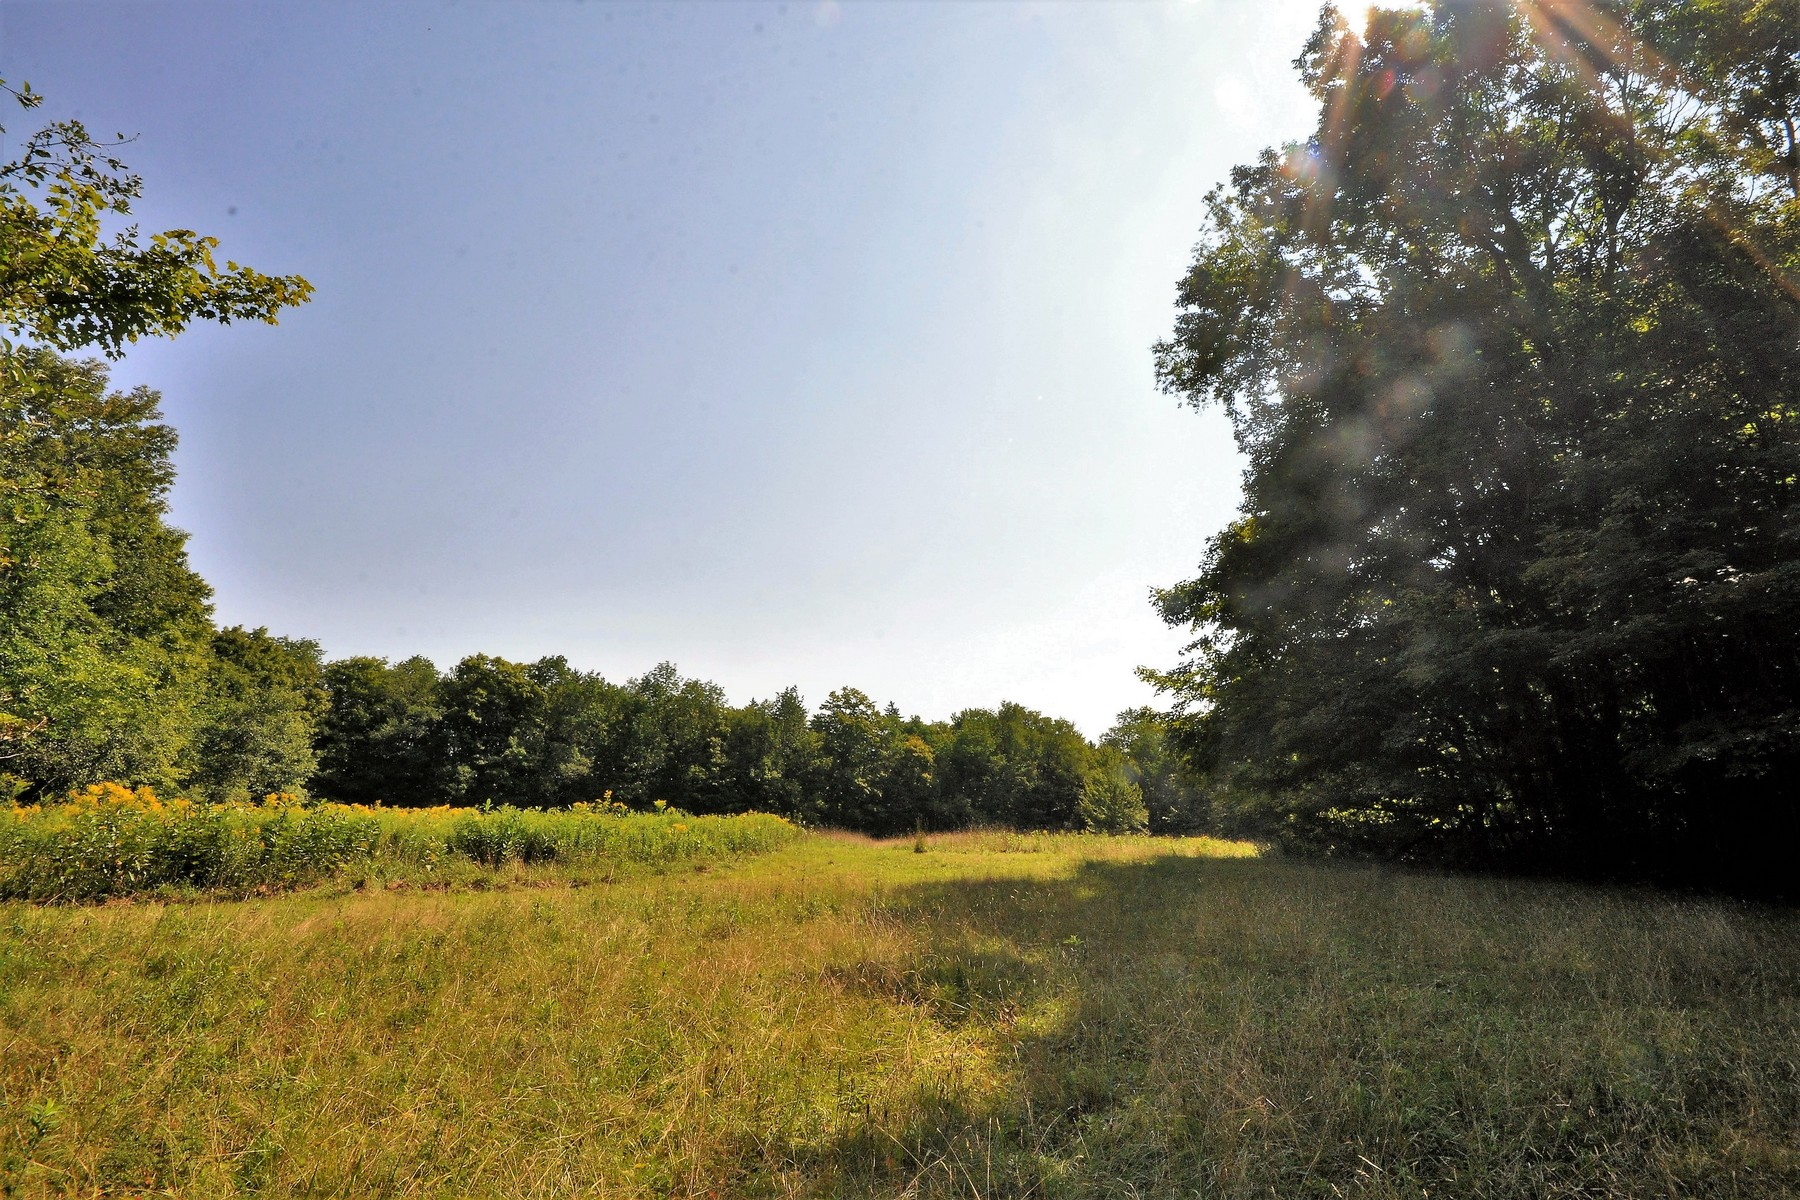 Land for Sale at Wilmington Crossroads 2B-07, Whitingham Wilmington Crossroads 2B-07 Whitingham, Vermont 05361 United States